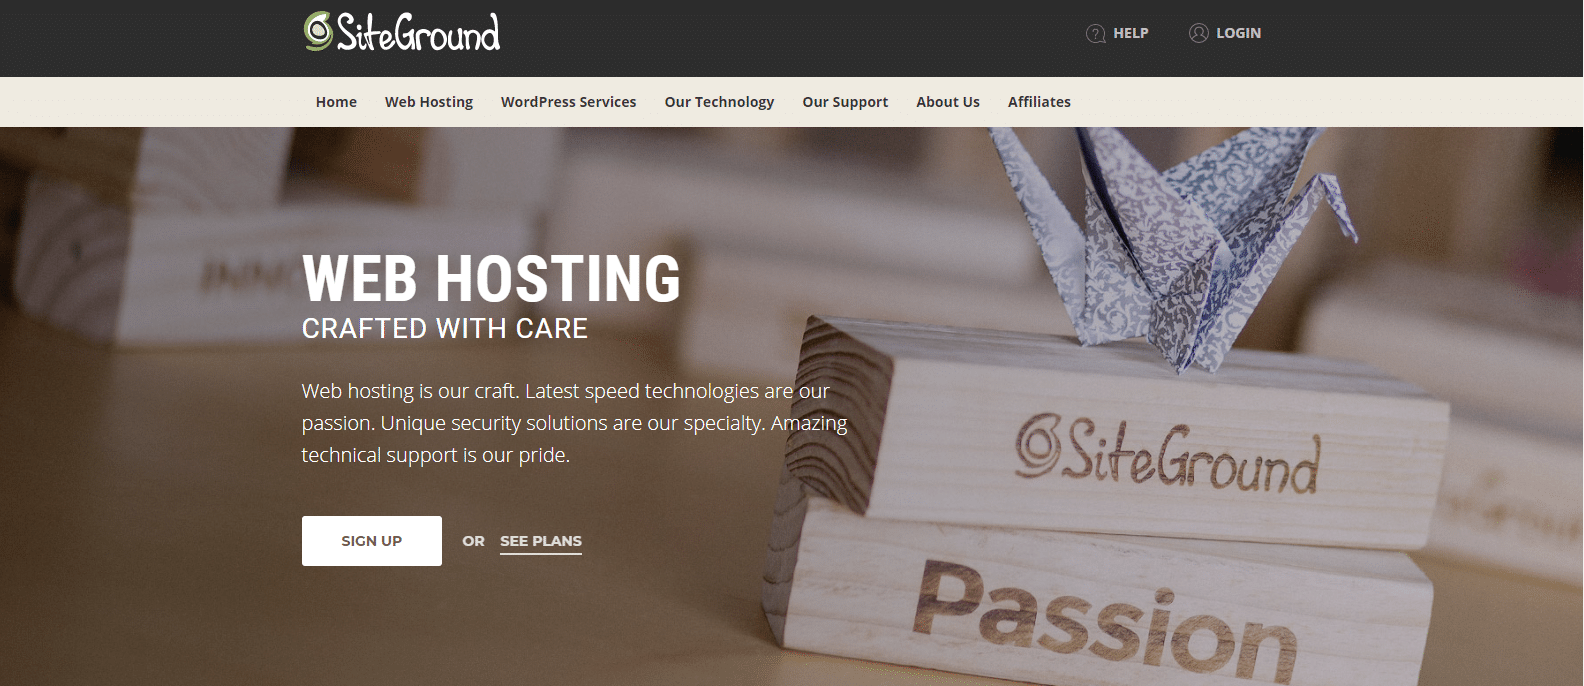 SiteGround Best Cheap WordPress Hosting Services for Small Sites